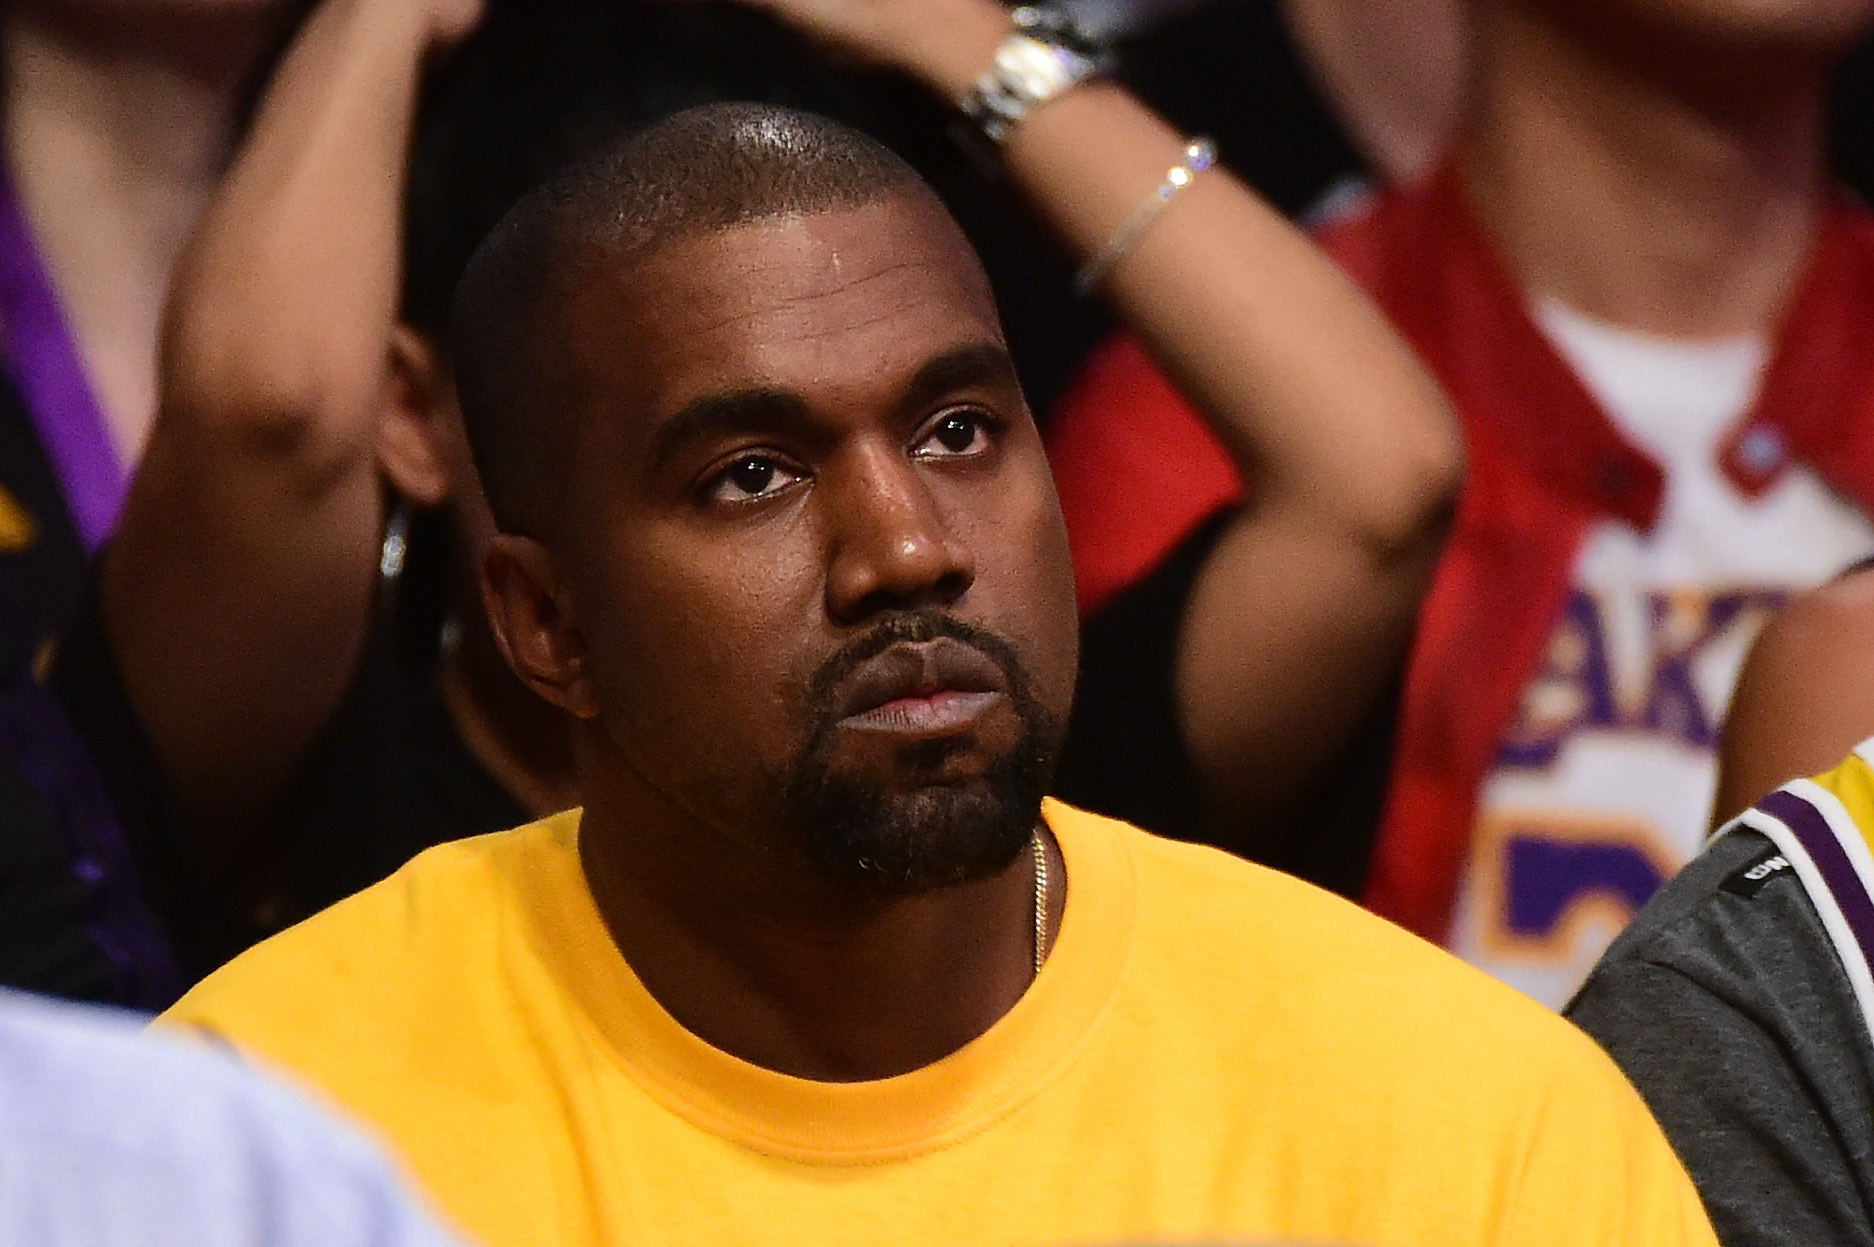 Kanye West attends LA Lakers game